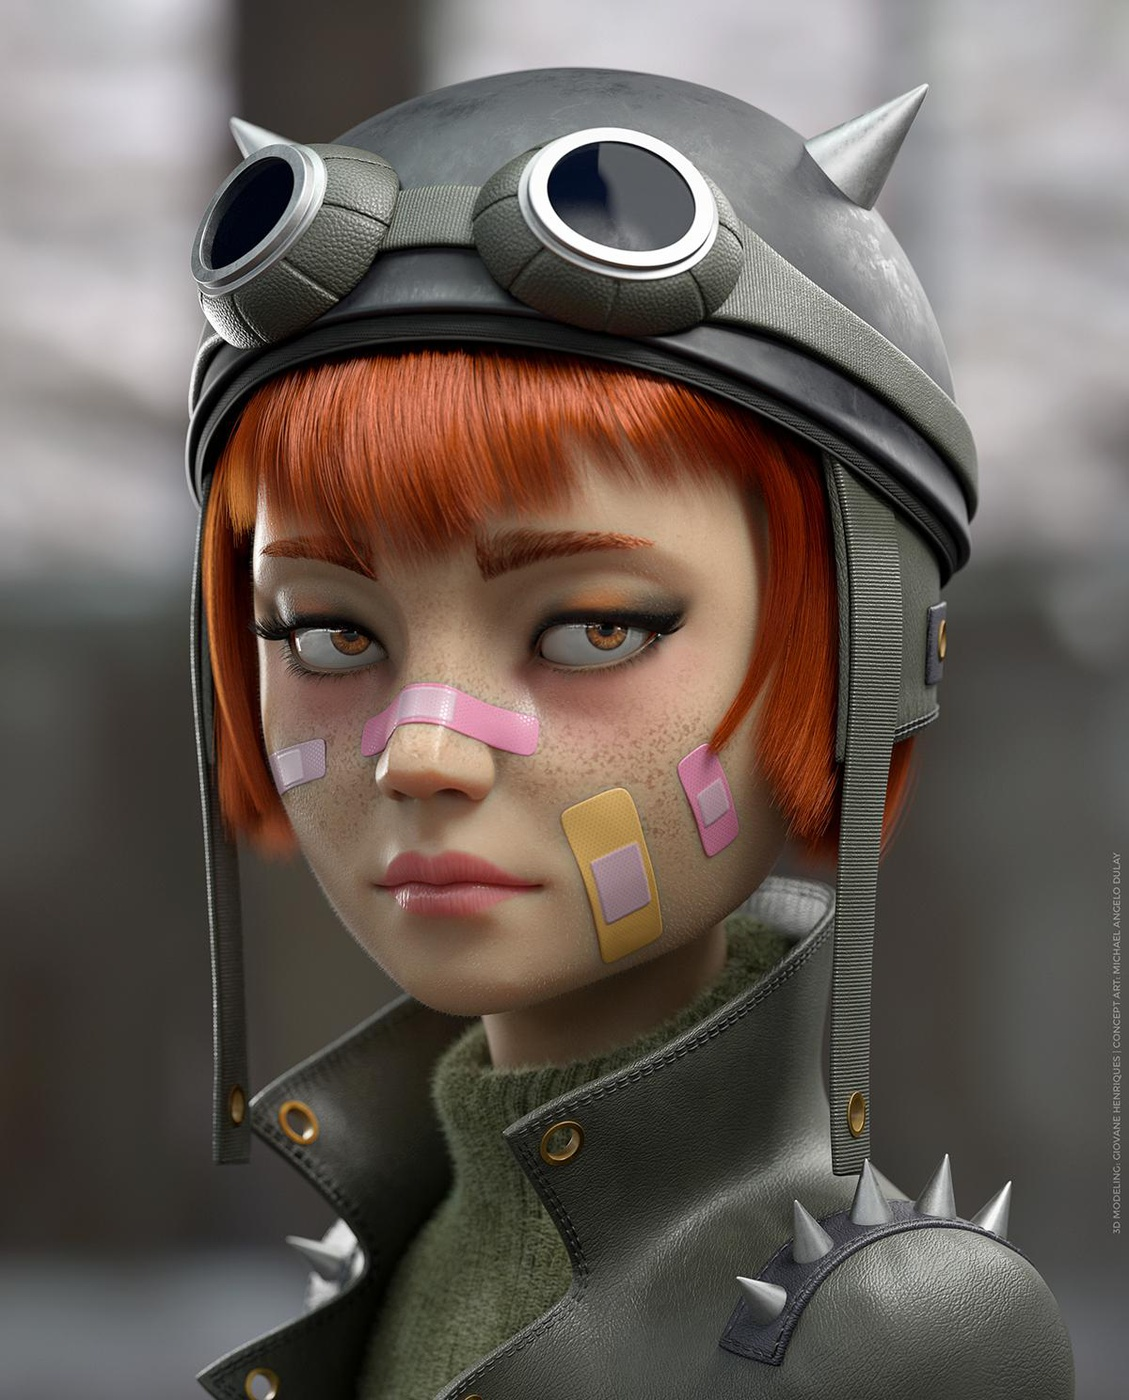 rider steampunk girl 3d model